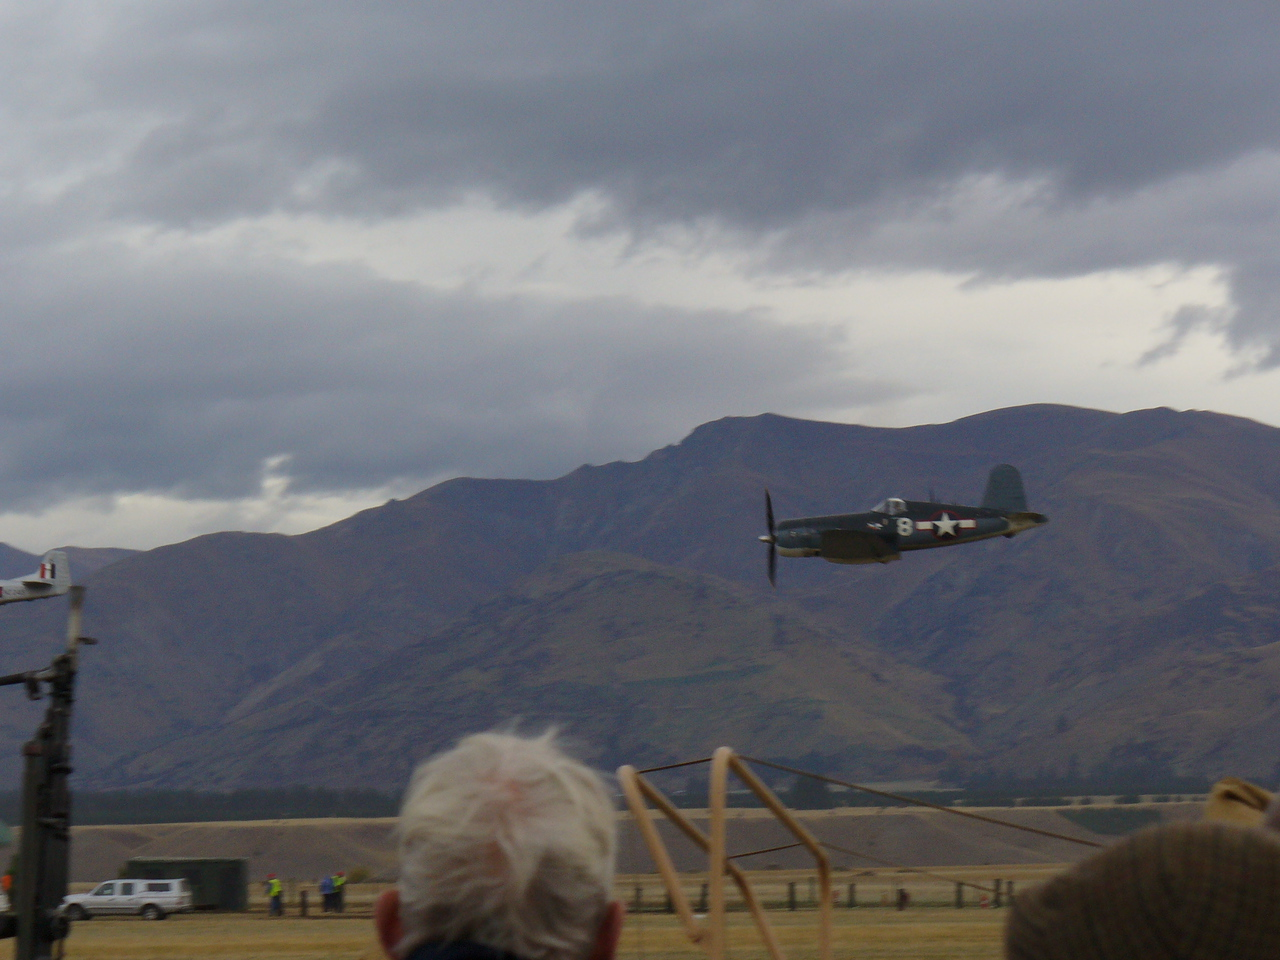 Poor photo of Corsair, tail of P-51 in front